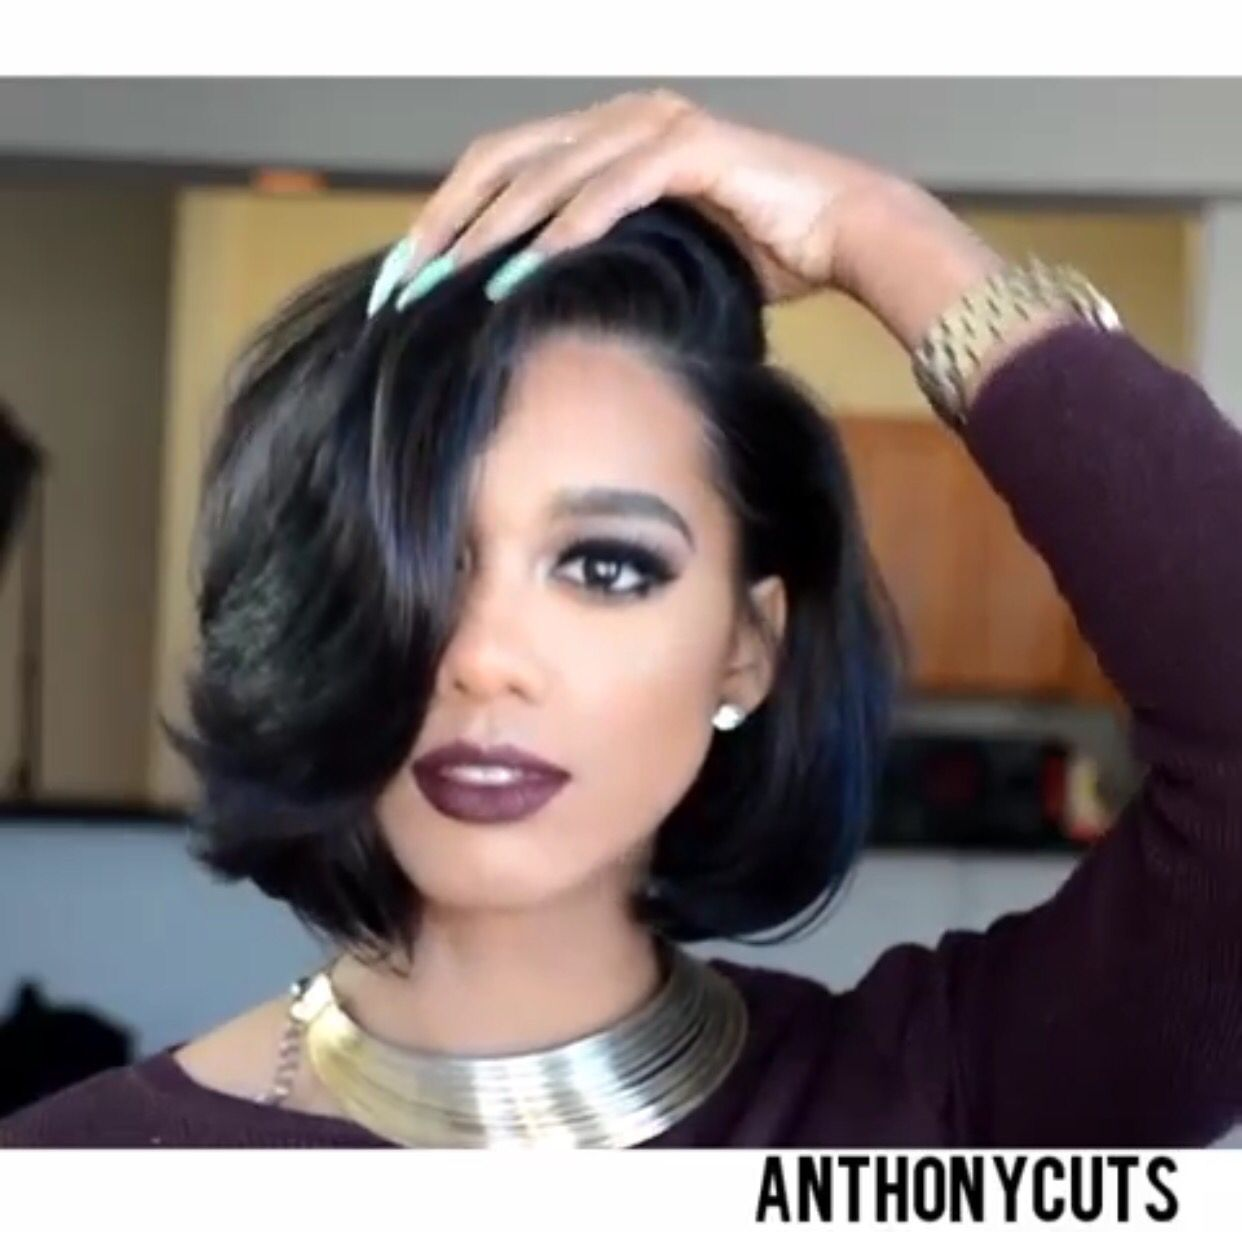 Anthonycuts Bob Goals Coiffure Cheveux Coiffure Courte